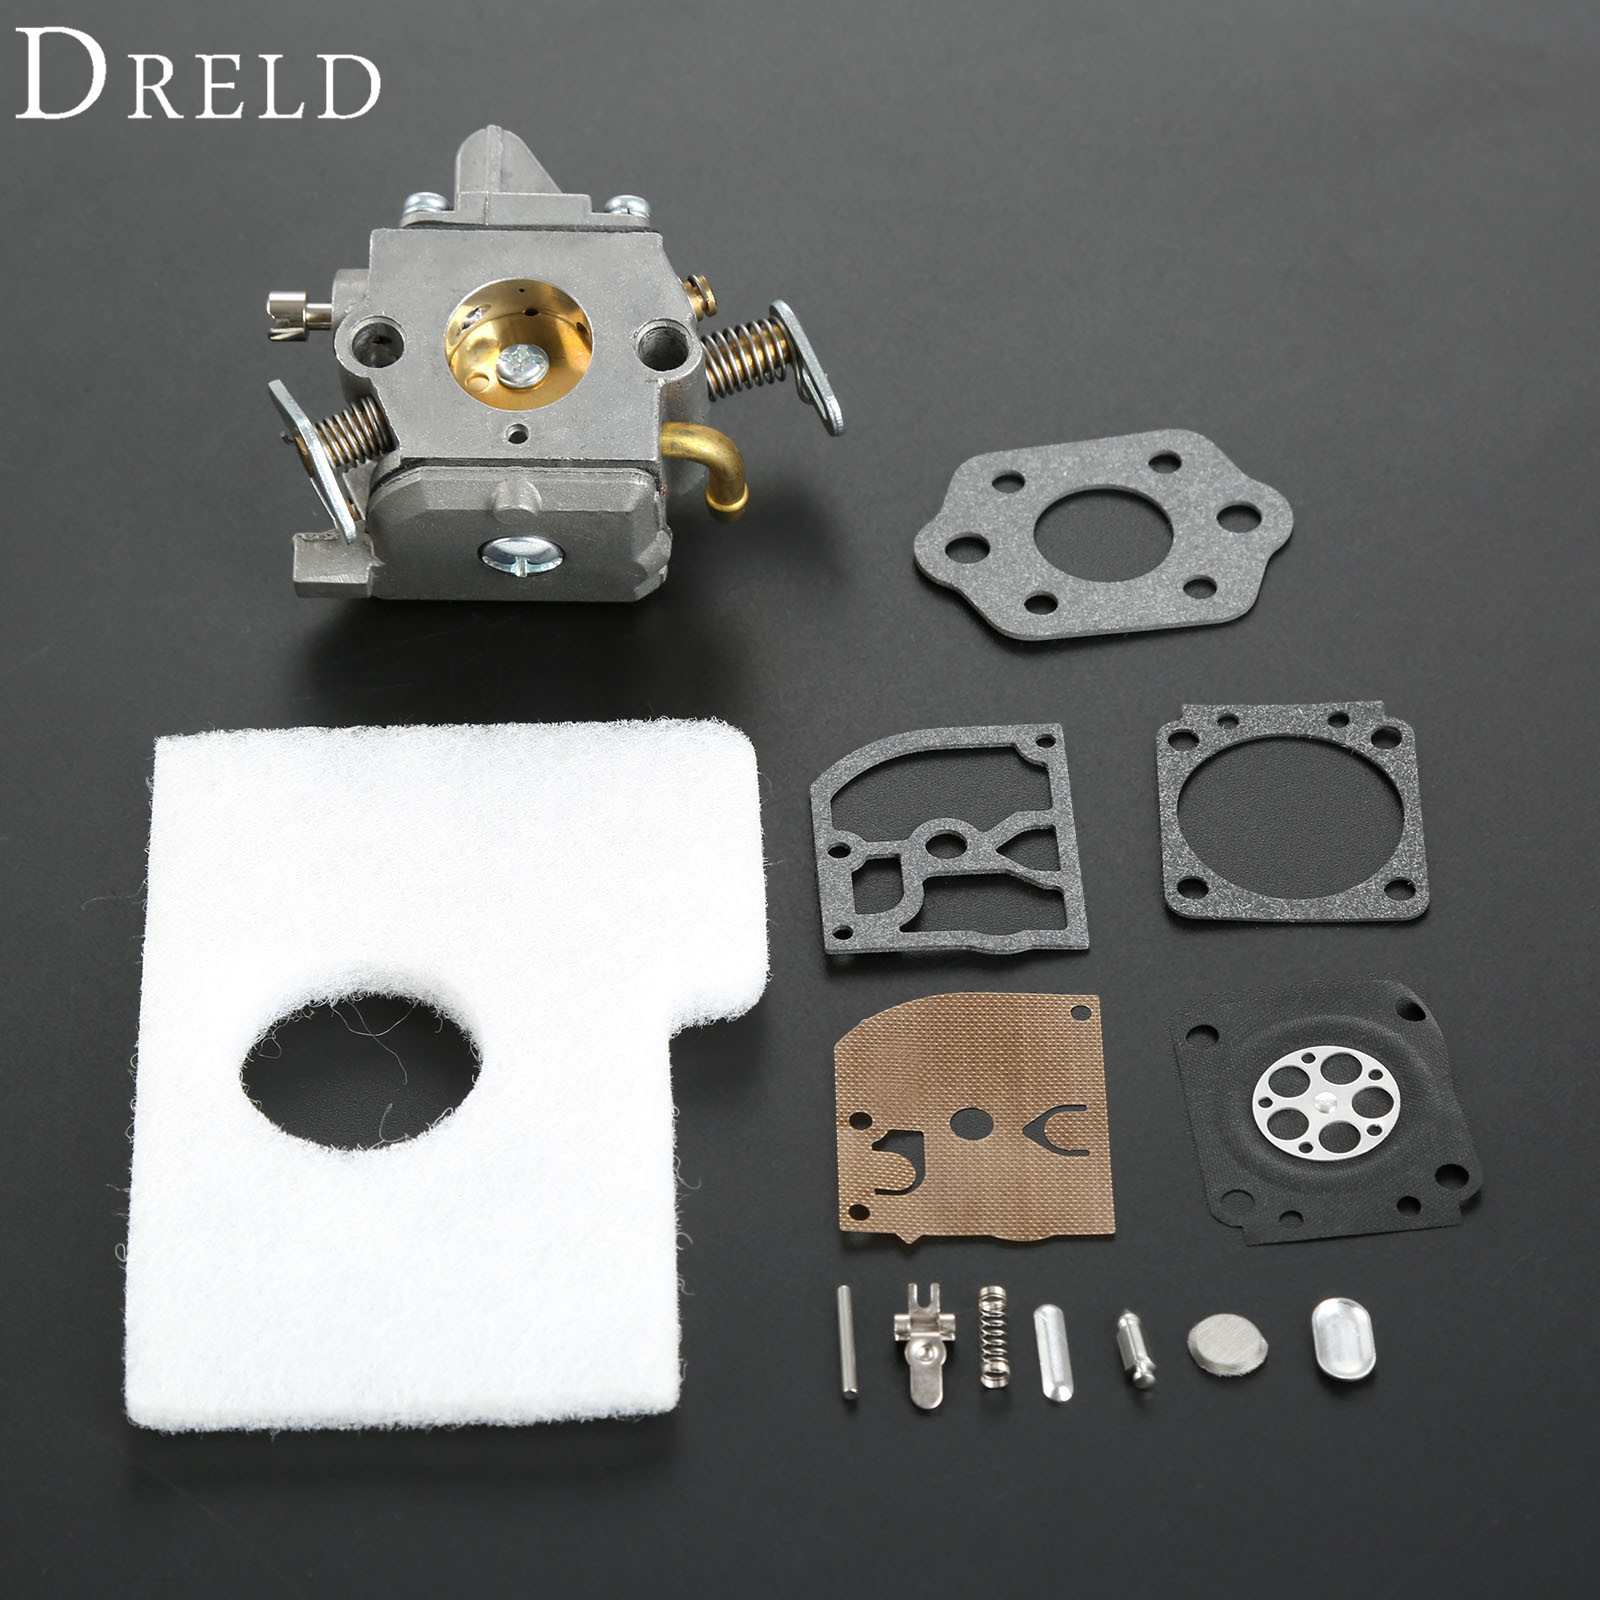 DRELD Chainsaws Carburetor Air Filter Repair Rebuild Kit For STIHL MS170 MS180 MS 170 180 017 018 Chainsaw Zama C1Q-S57B 1130 бензопила stihl ms 180 c be 14